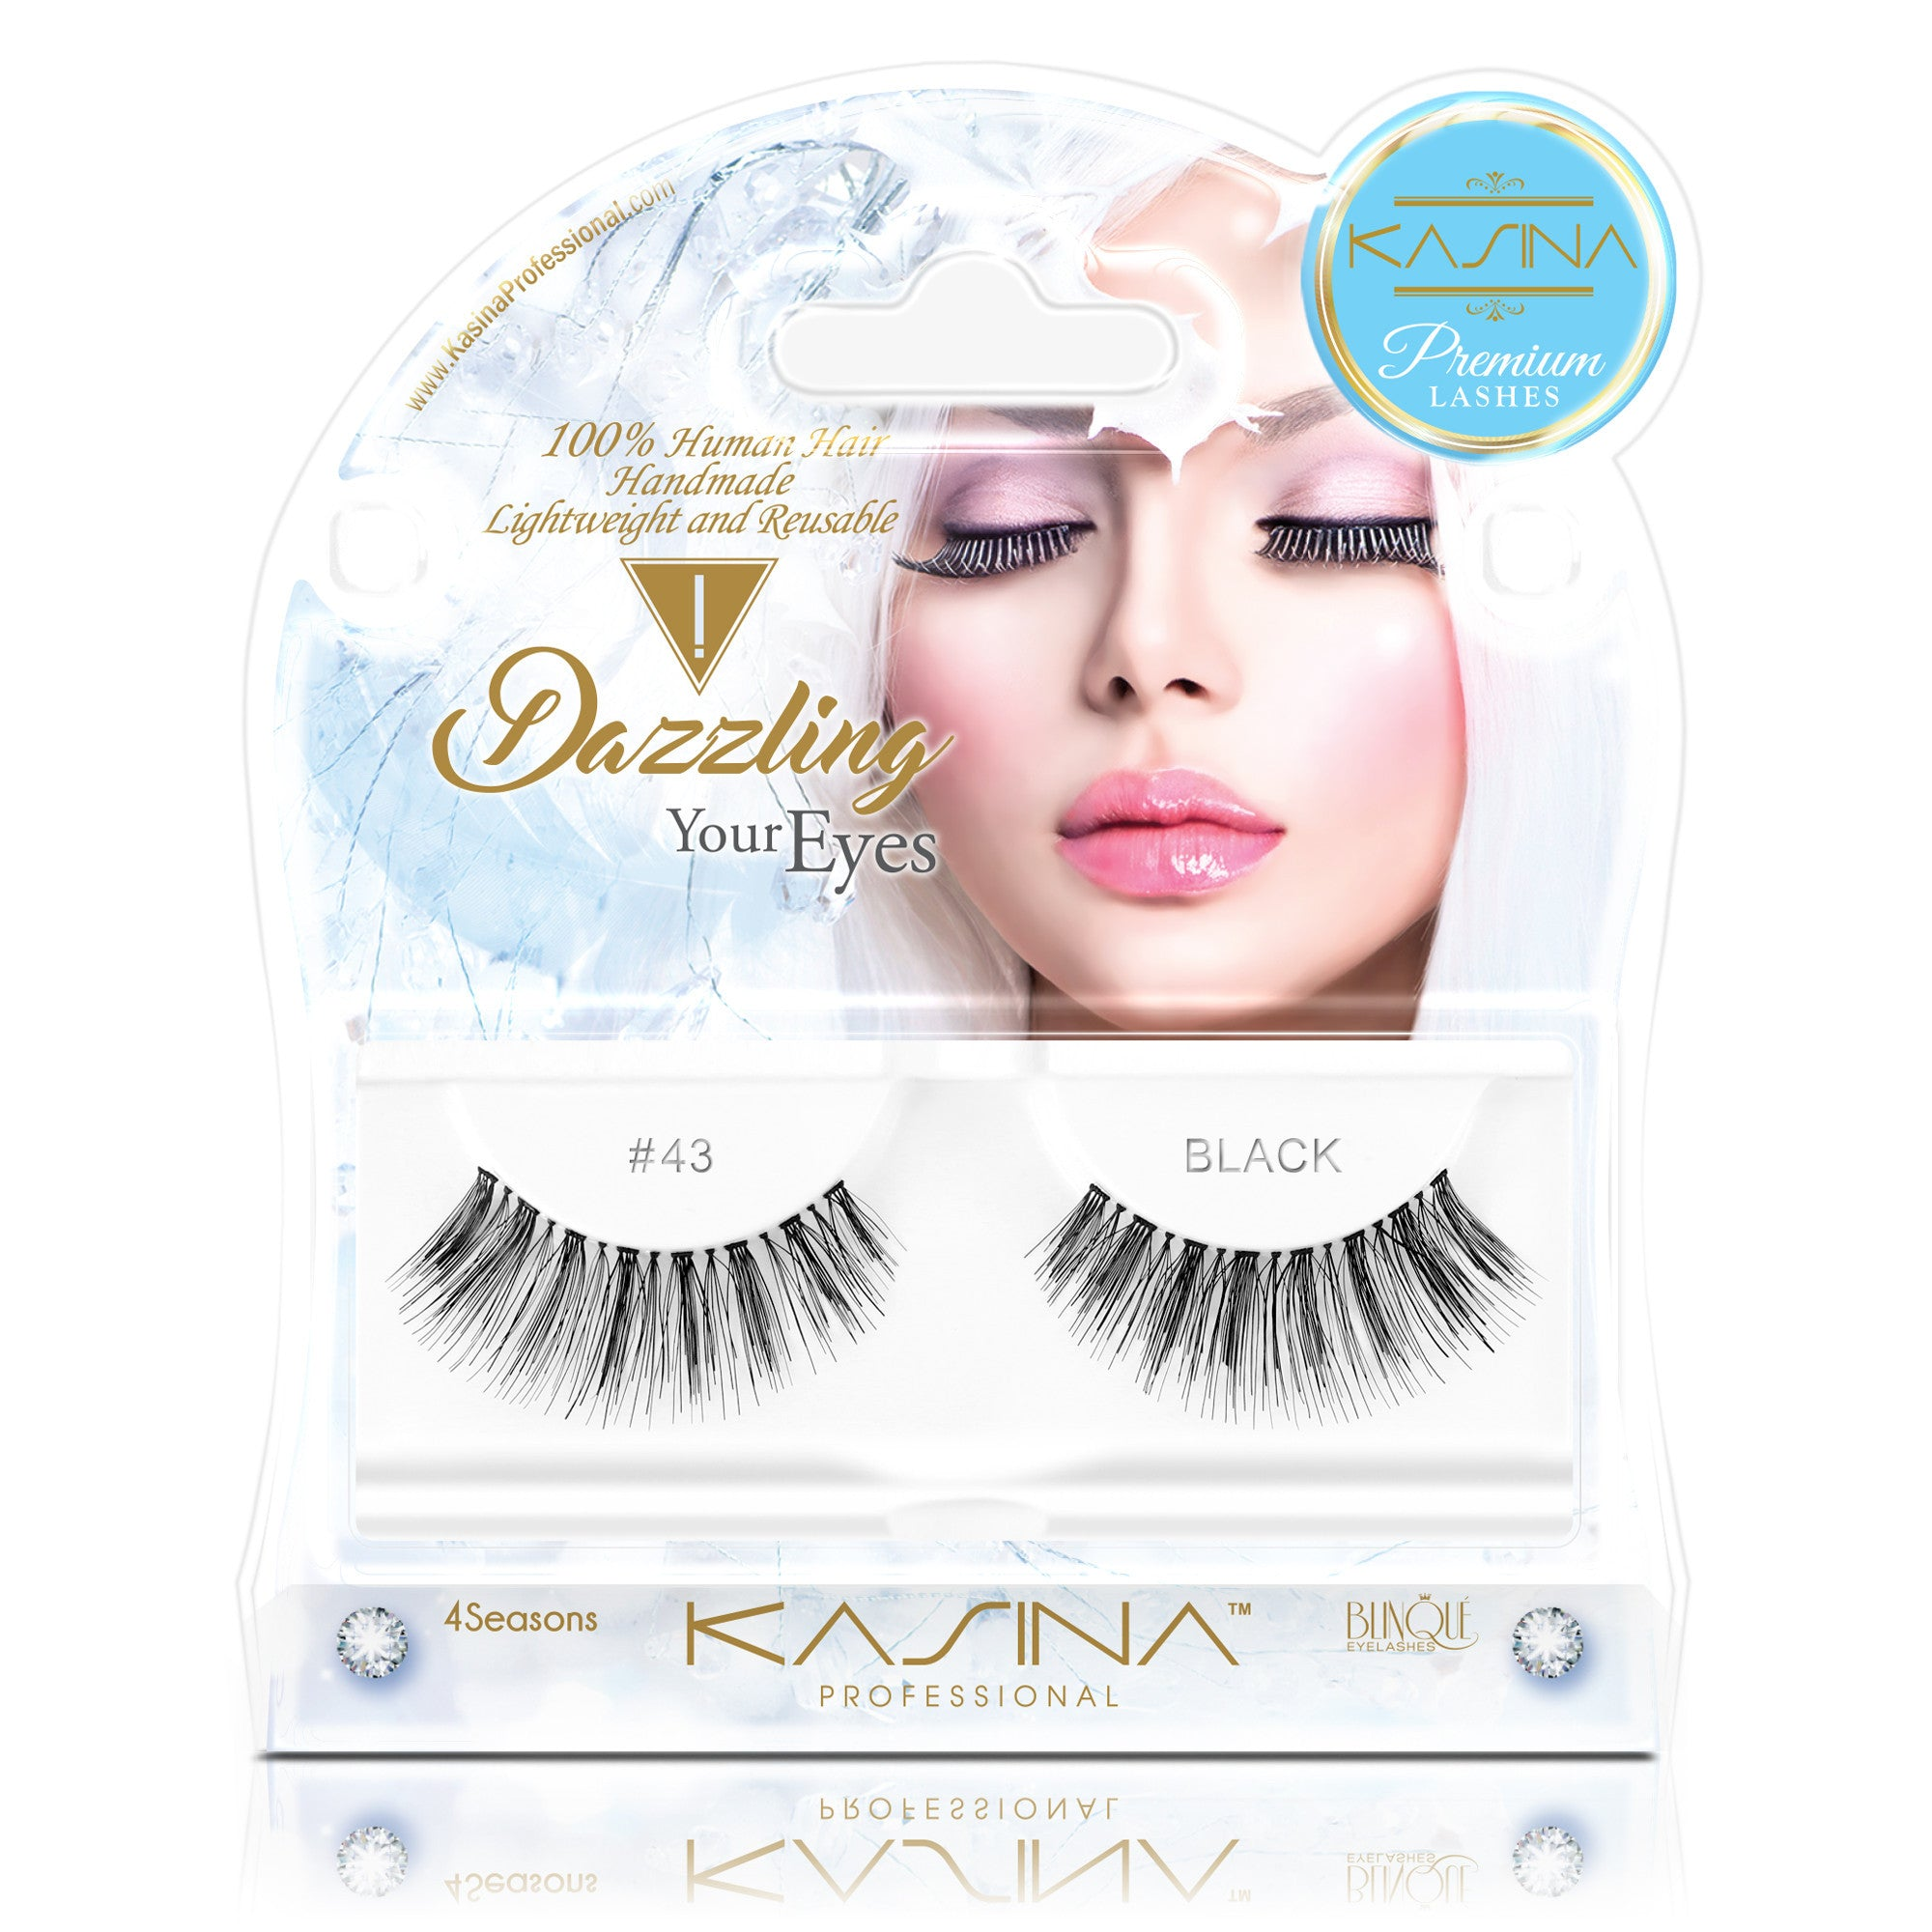 False Lashes - Premium Dazzling #43, IVY - Recommended by Professional Makeup Artists.